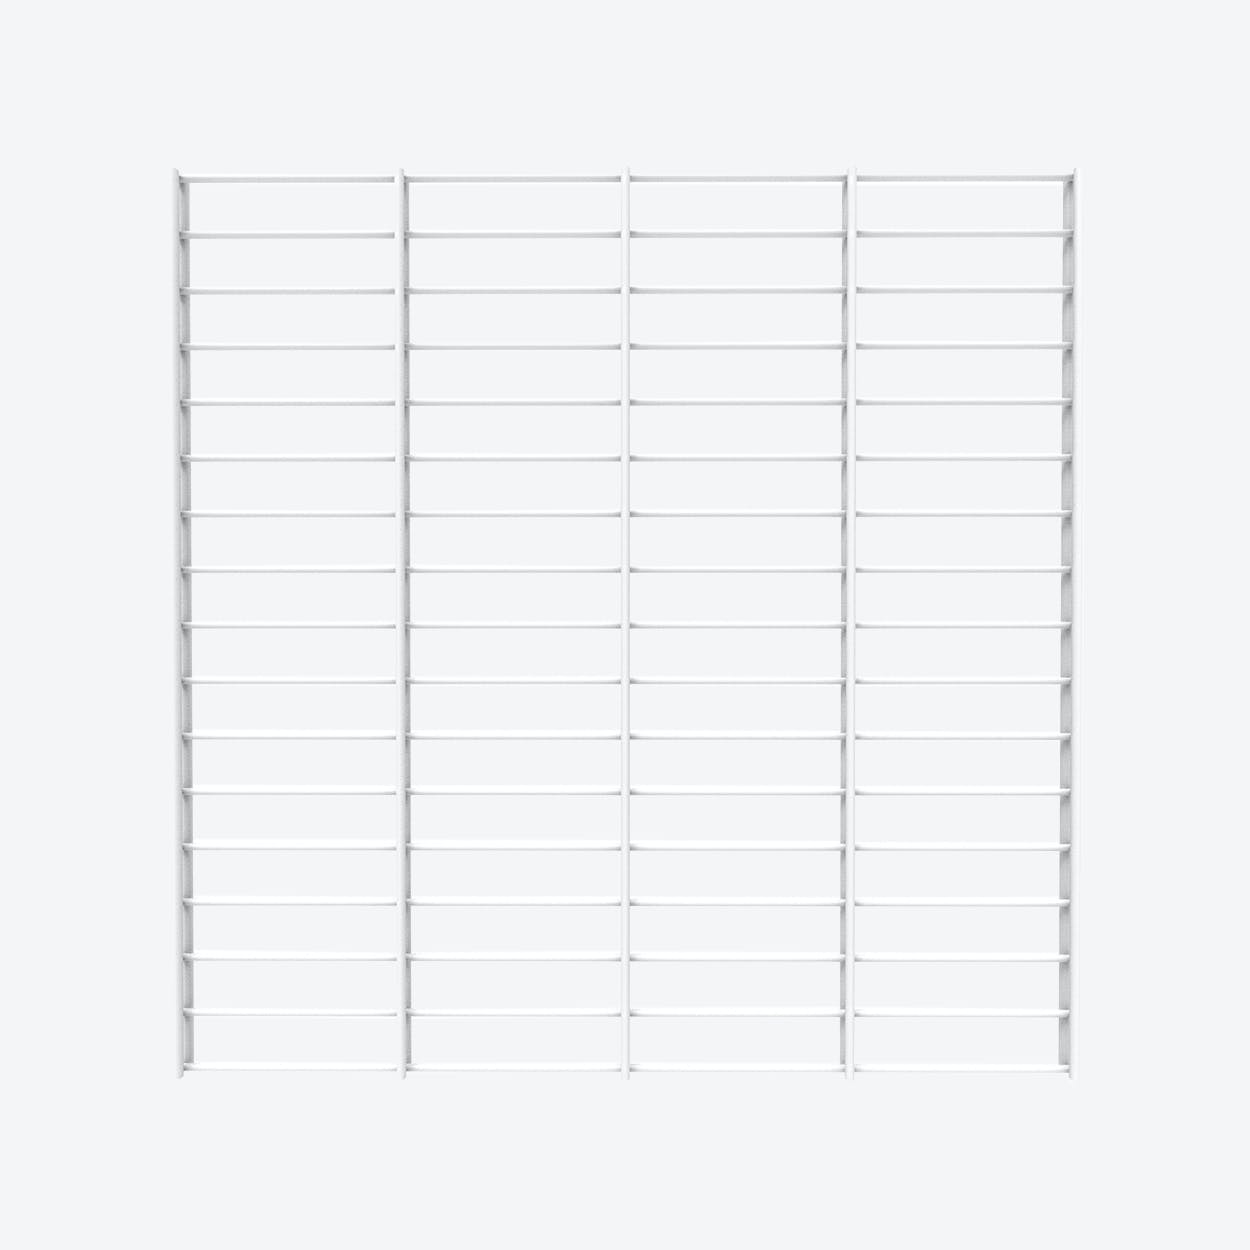 Fency Rack, 80x80 in White